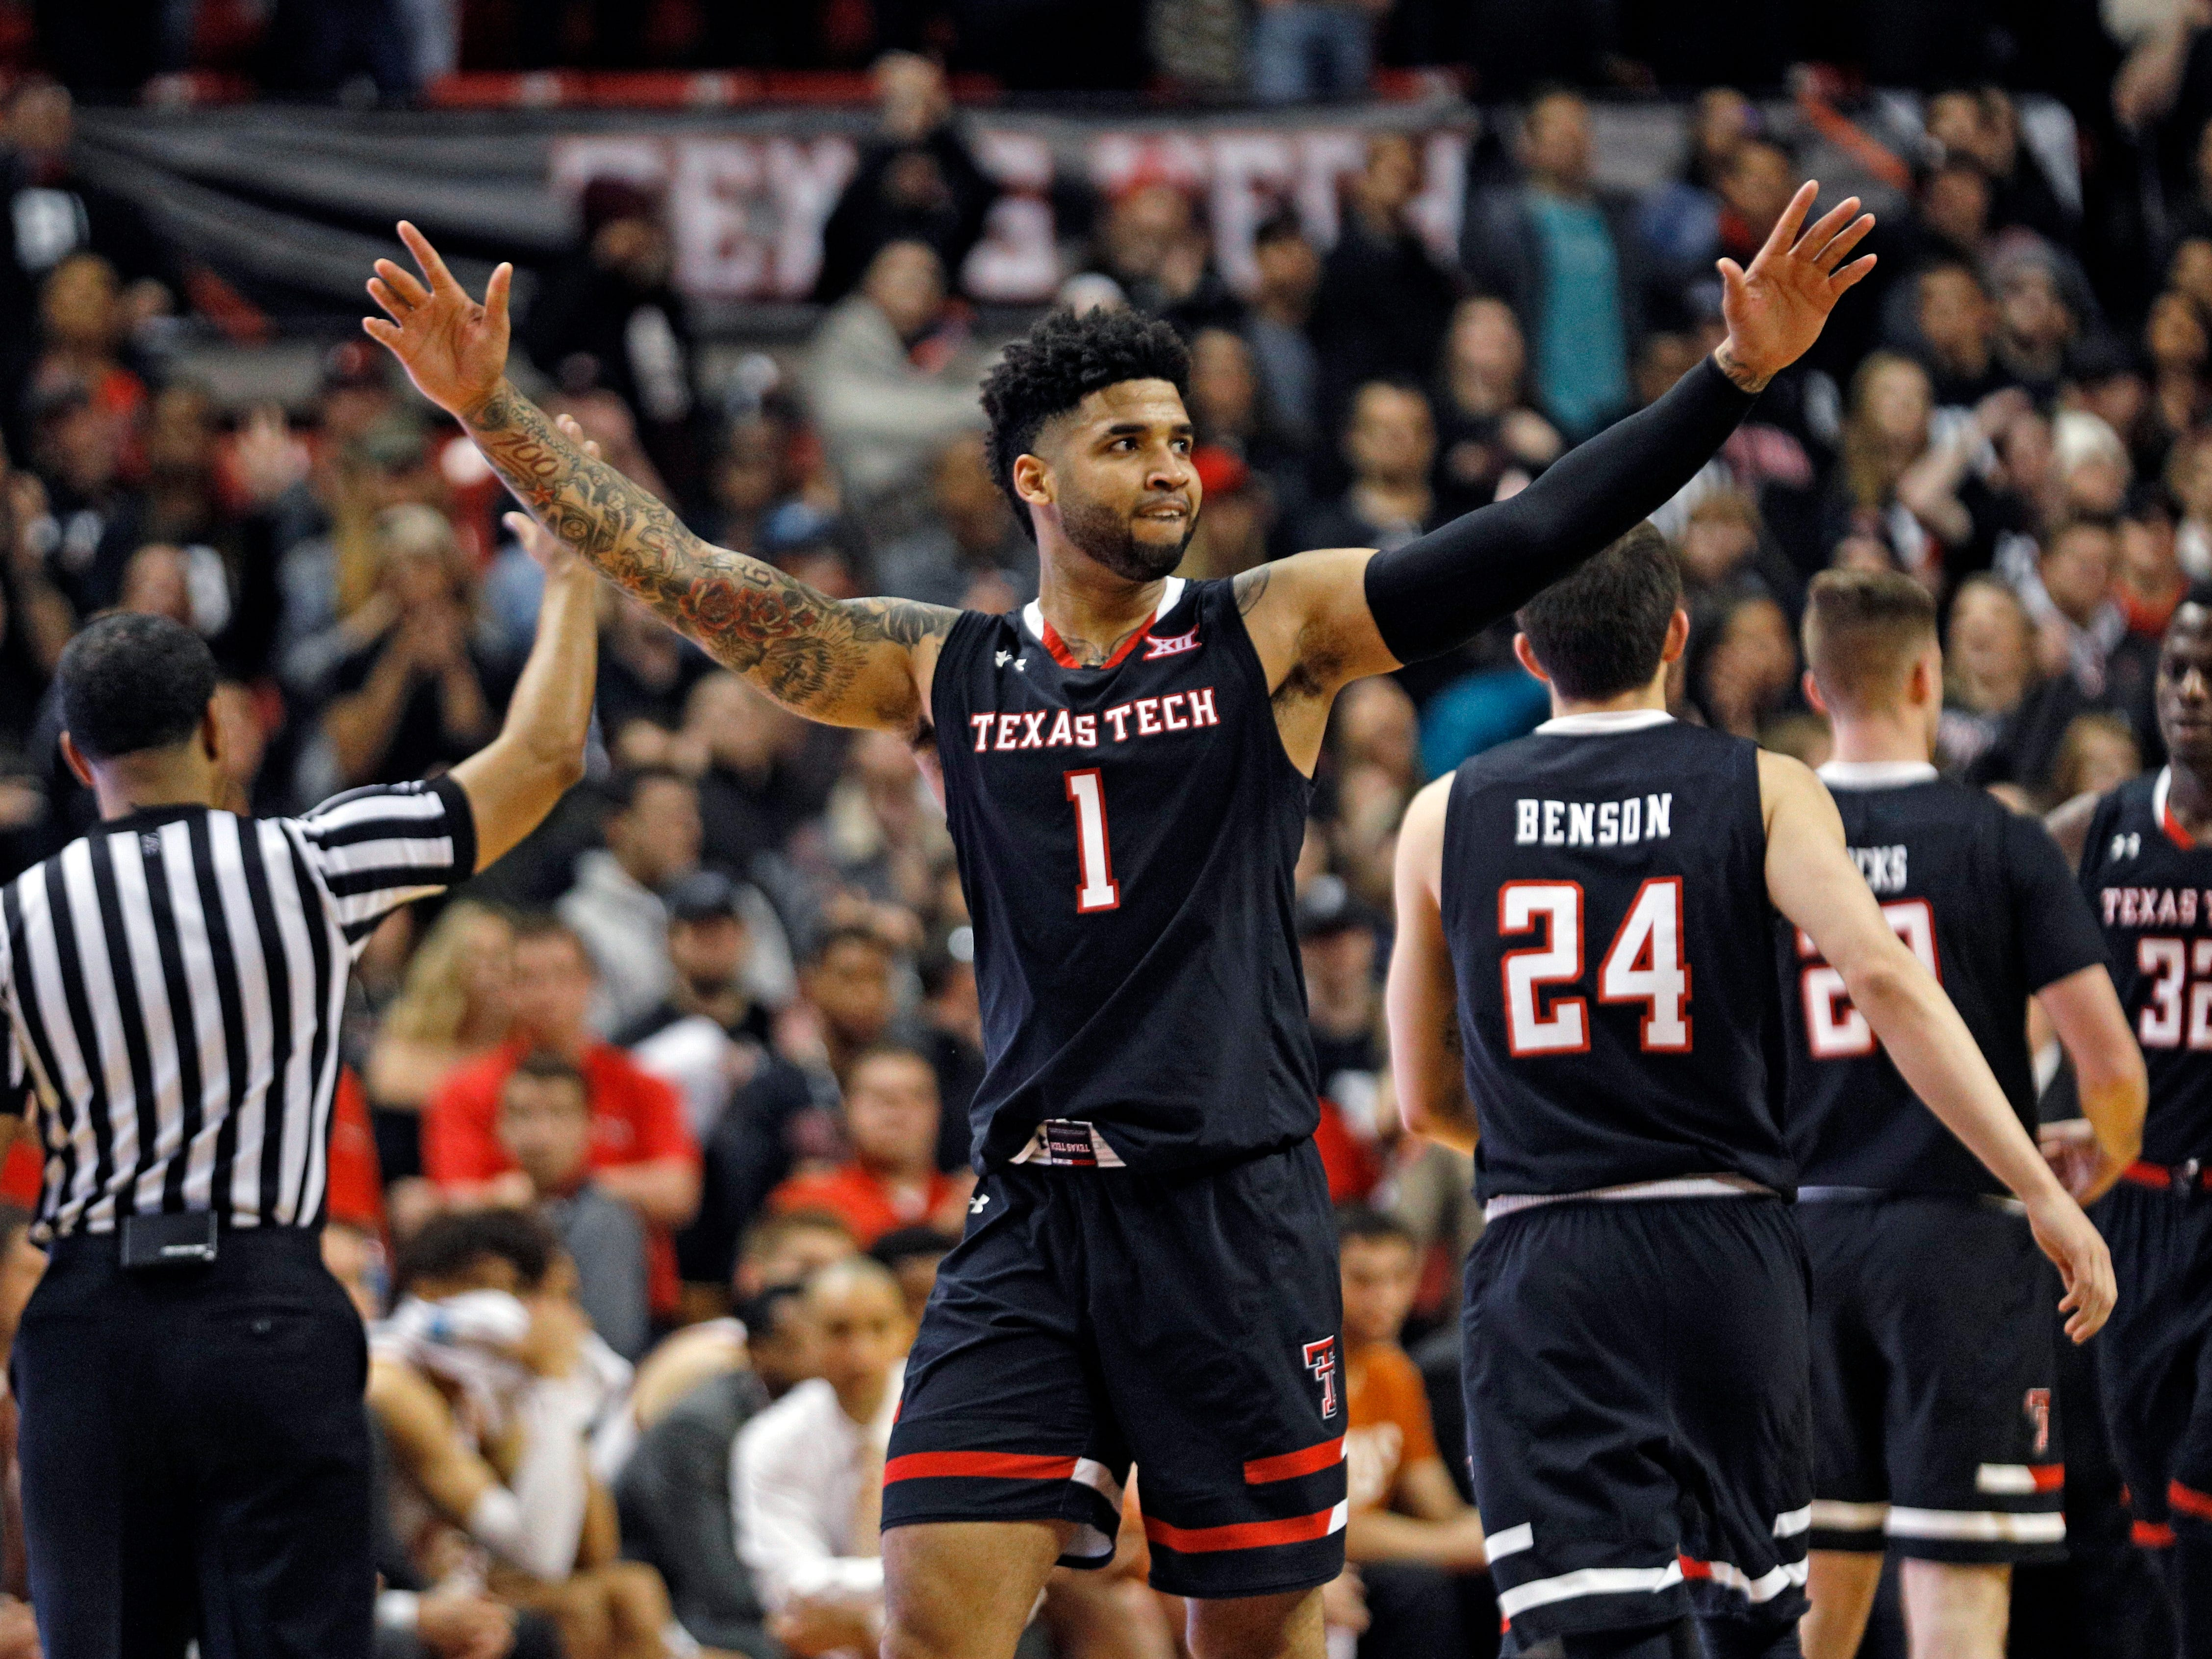 Texas Tech's Brandone Francis (1) celebrates while walking off the court during the second half of an NCAA college basketball game against Texas, Monday, March 4, 2019, in Lubbock, Texas. (AP Photo/Brad Tollefson)